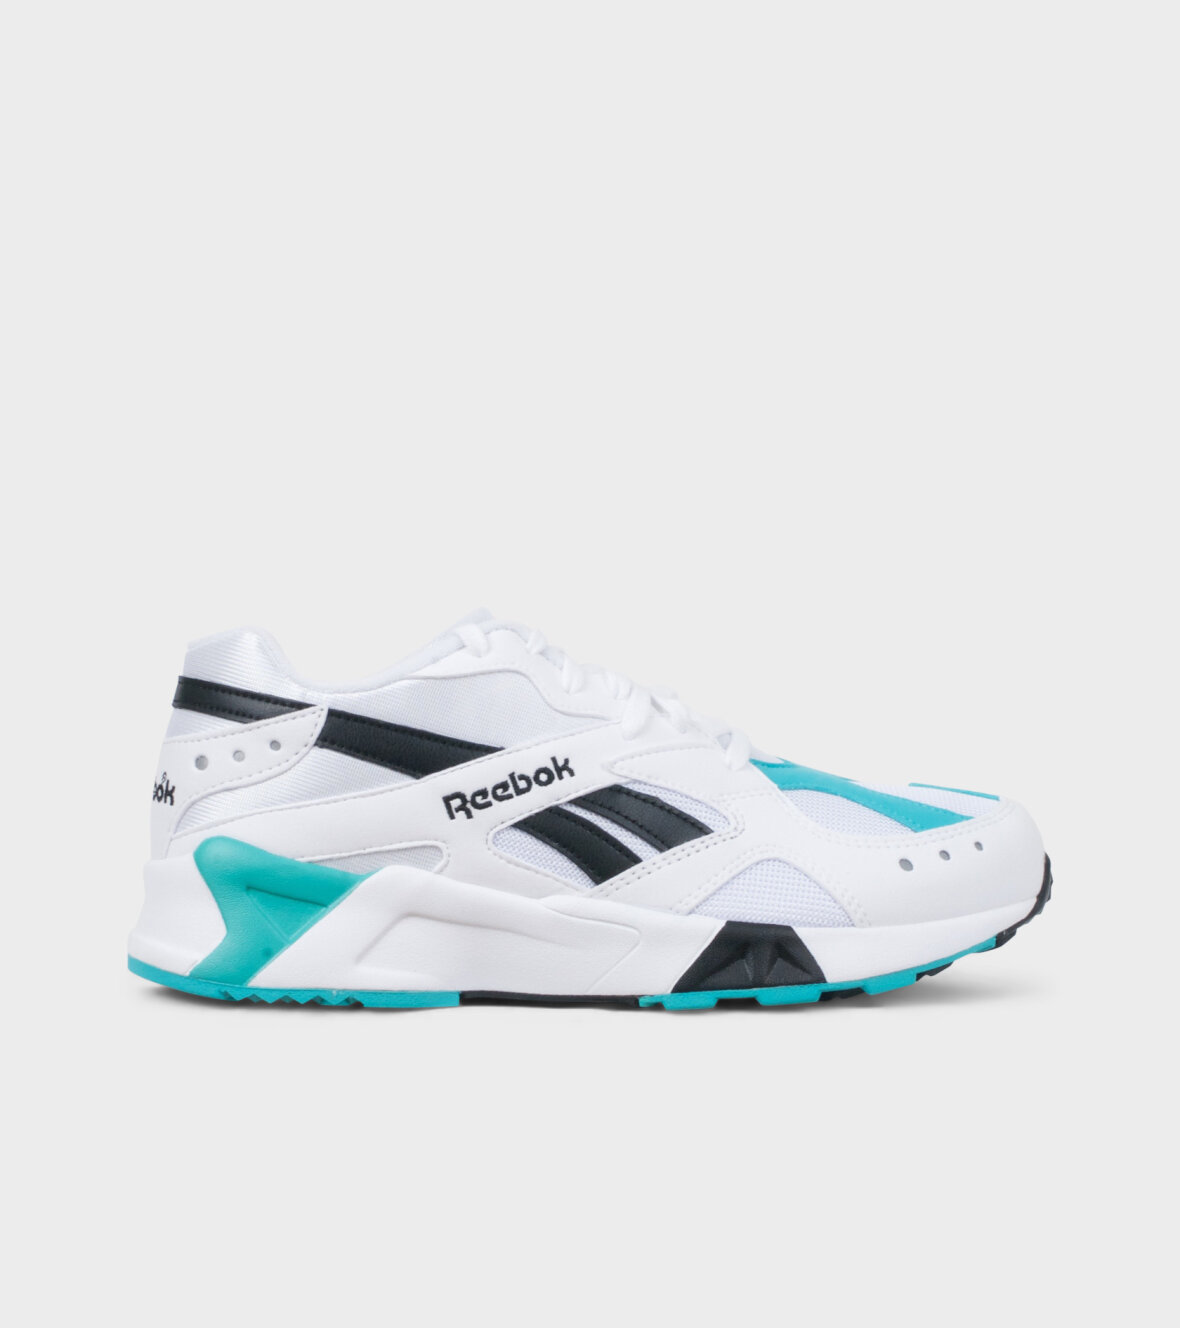 ffb97c1d3a1 Dr. Adams - Reebok Aztrek White/Green sneakers - dr. Adams